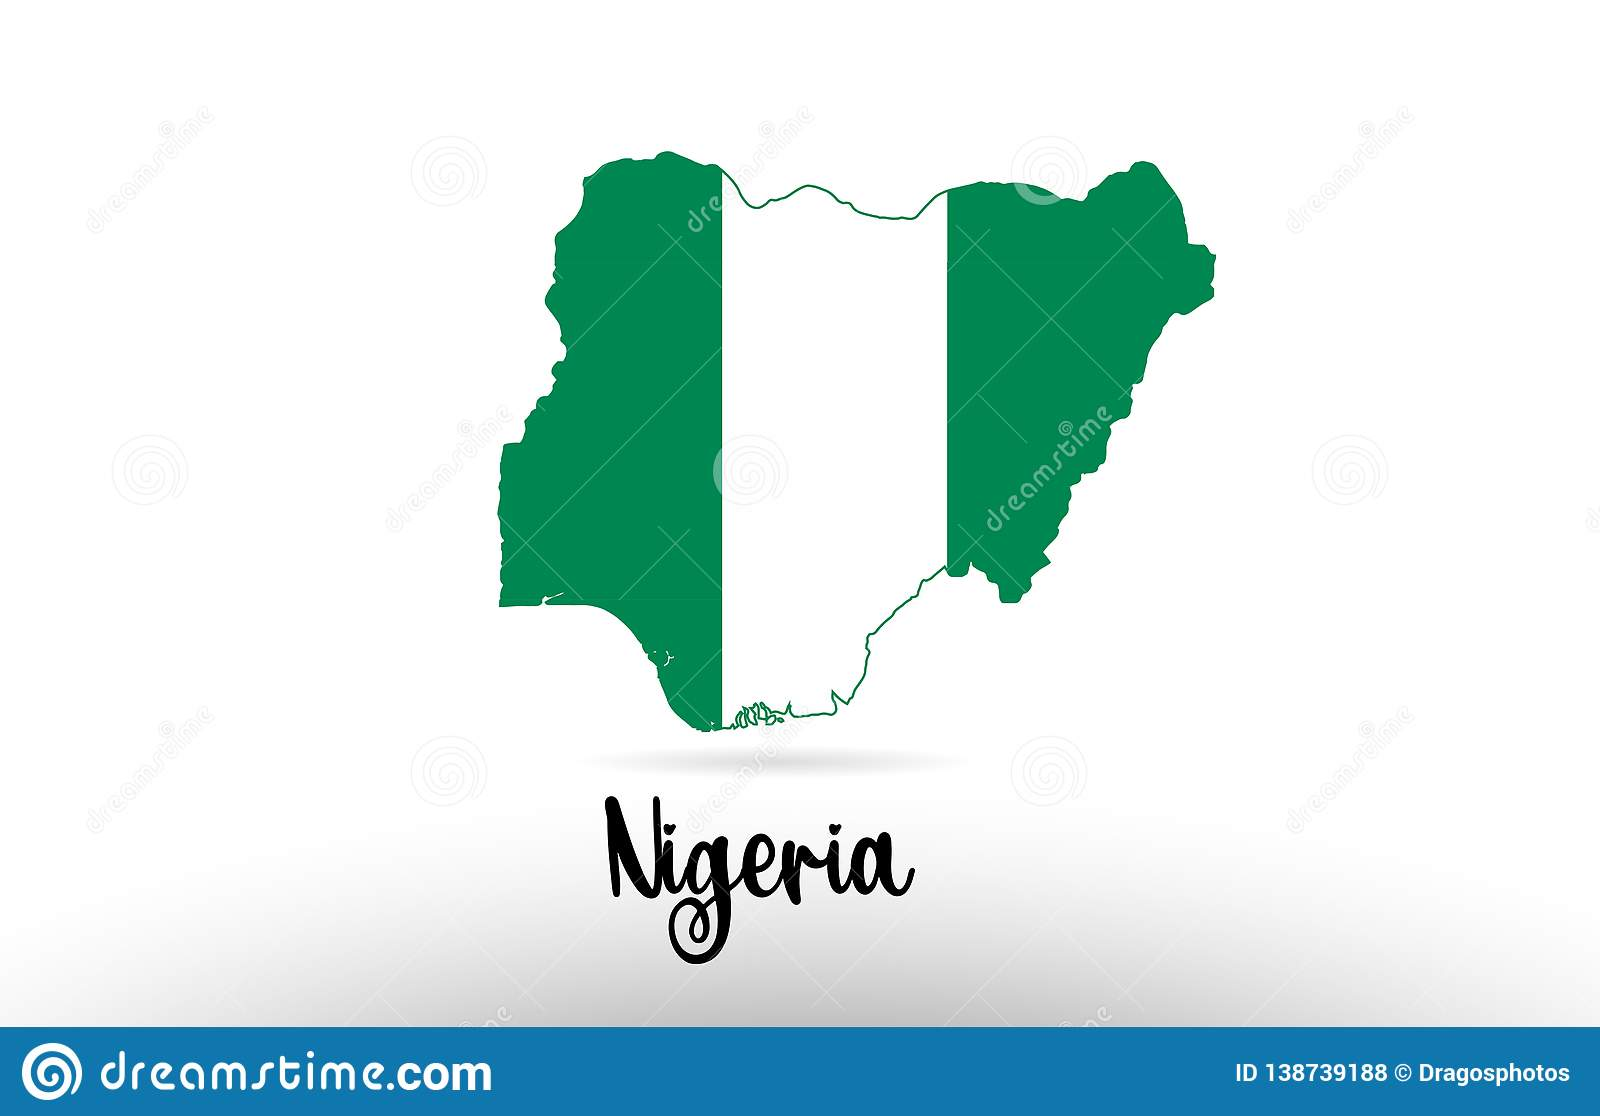 nigeria-country-flag-inside-country-border-map-design-suitable-logo-icon-design-nigeria-country-flag-inside-map-contour-138739188.jpg